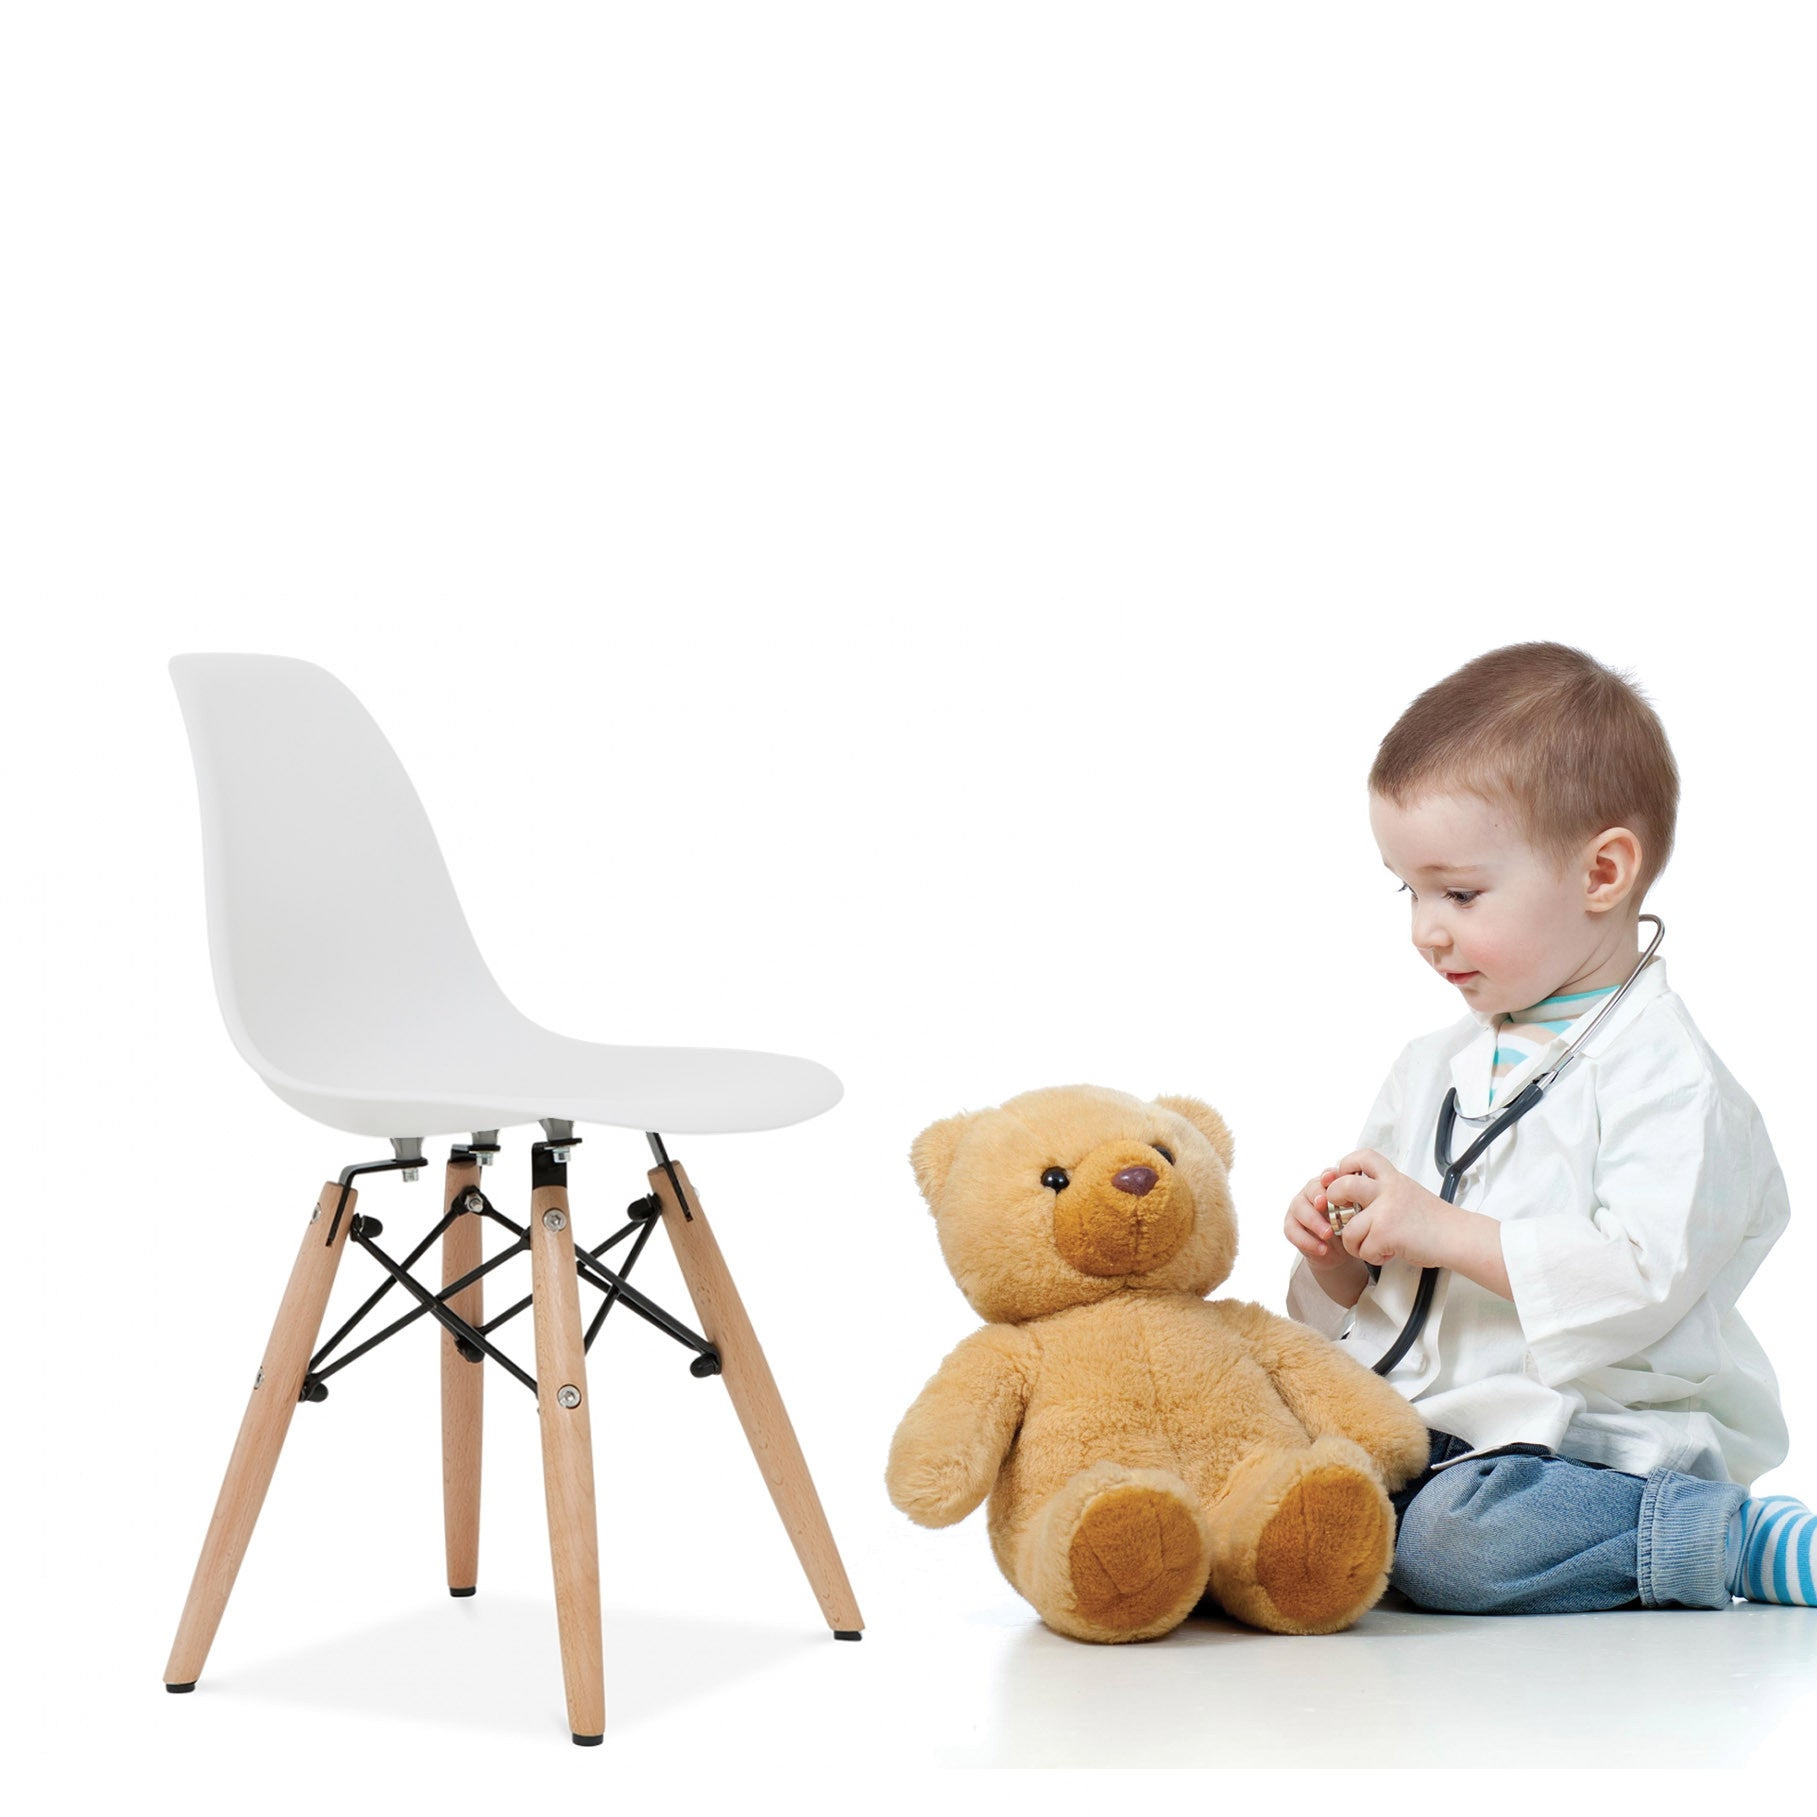 Kids Chair -Plastic- MSK0055W PC-0117W-W -  كرسي اطفال - بلاستيك - Shop Online Furniture and Home Decor Store in Dubai, UAE at ebarza